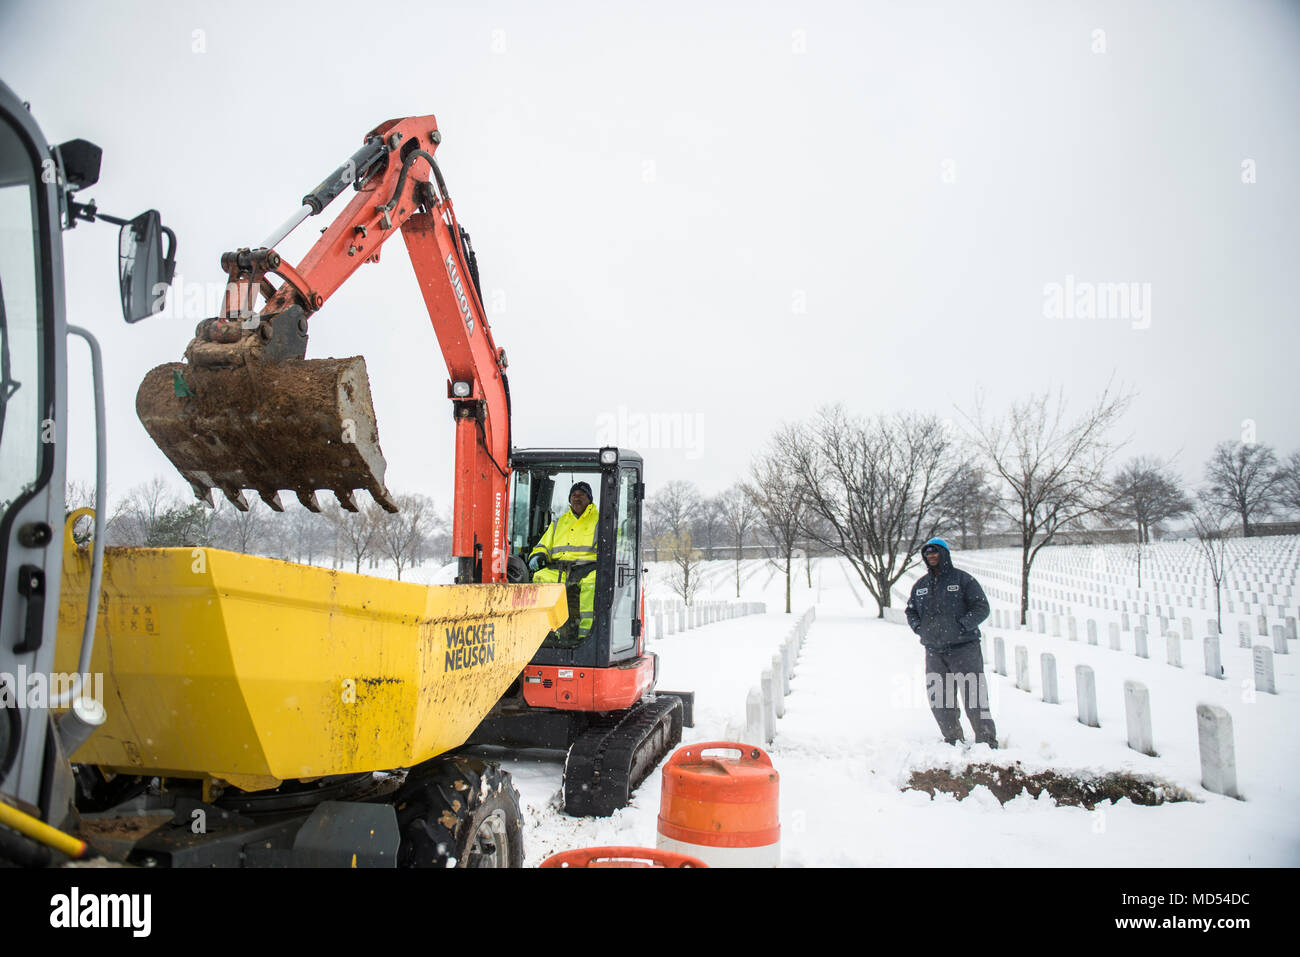 Field Operations teams use excavators and other equipment to